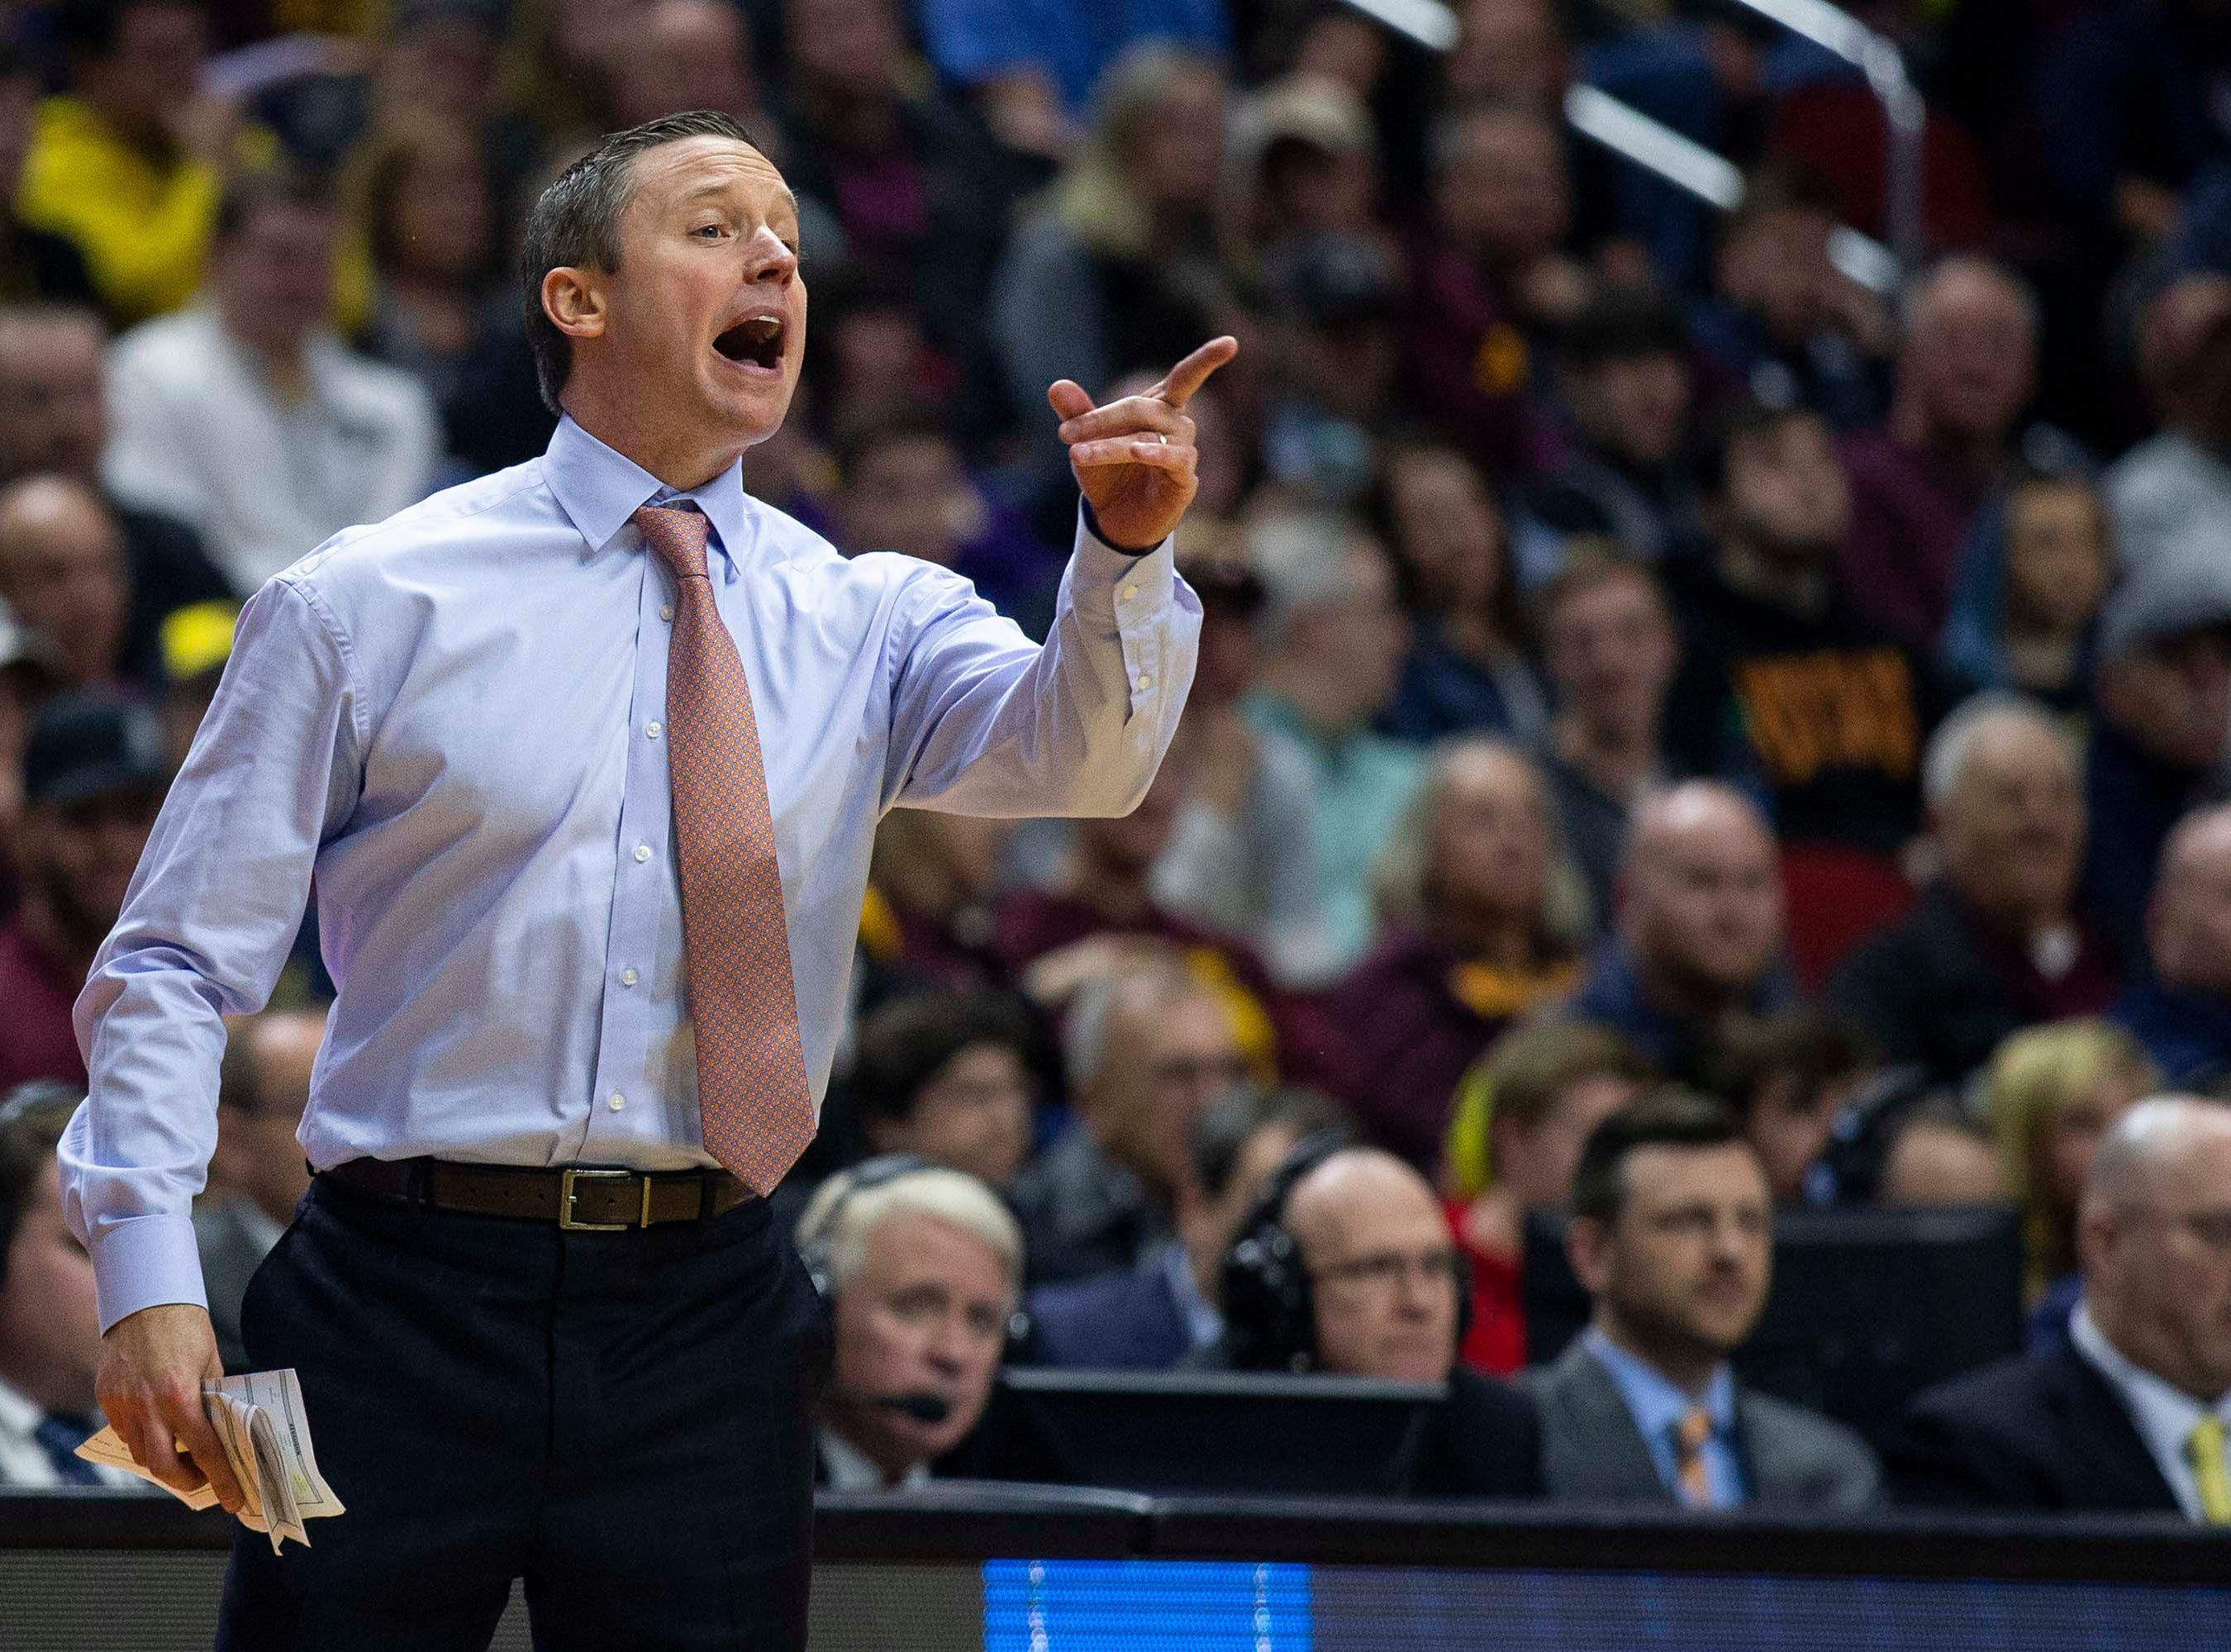 Florida Head Coach Mike White during the NCAA Tournament second-round match-up between Michigan and Florida on Saturday, March 23, 2019, in Wells Fargo Arena in Des Moines, Iowa.